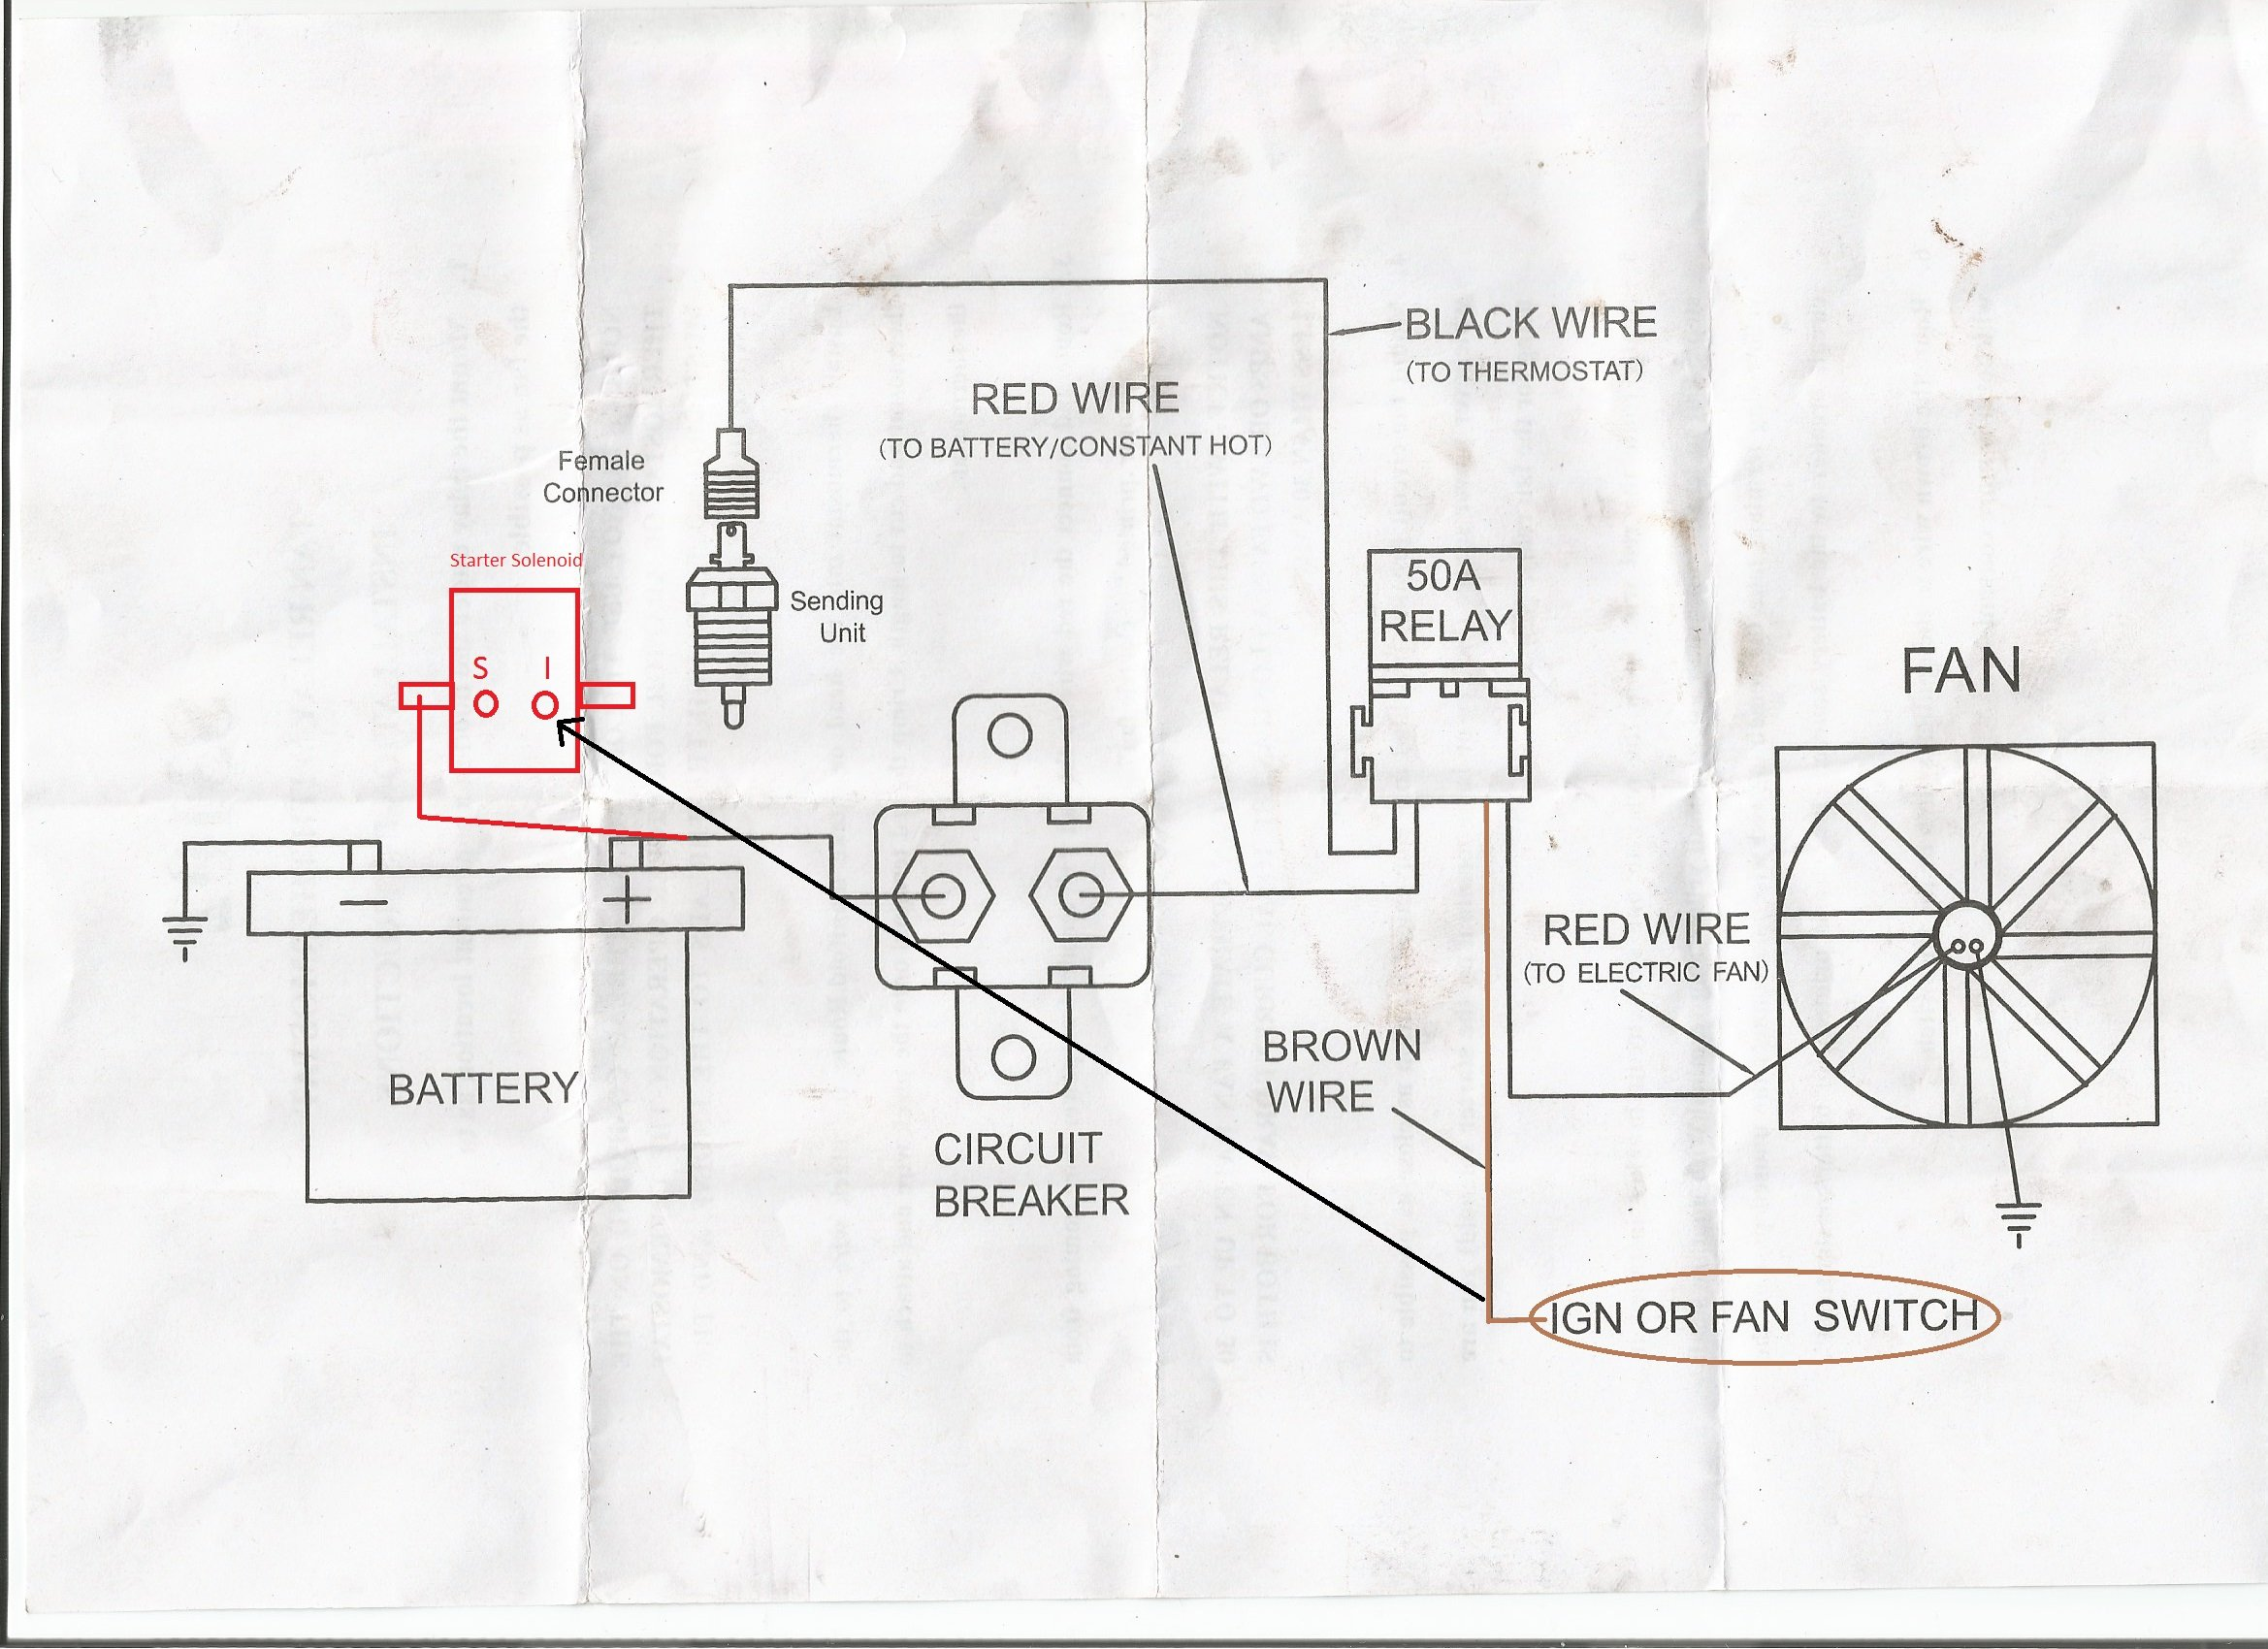 Wiring Diagram For Ford Starter Solenoid Fan Relay : 50